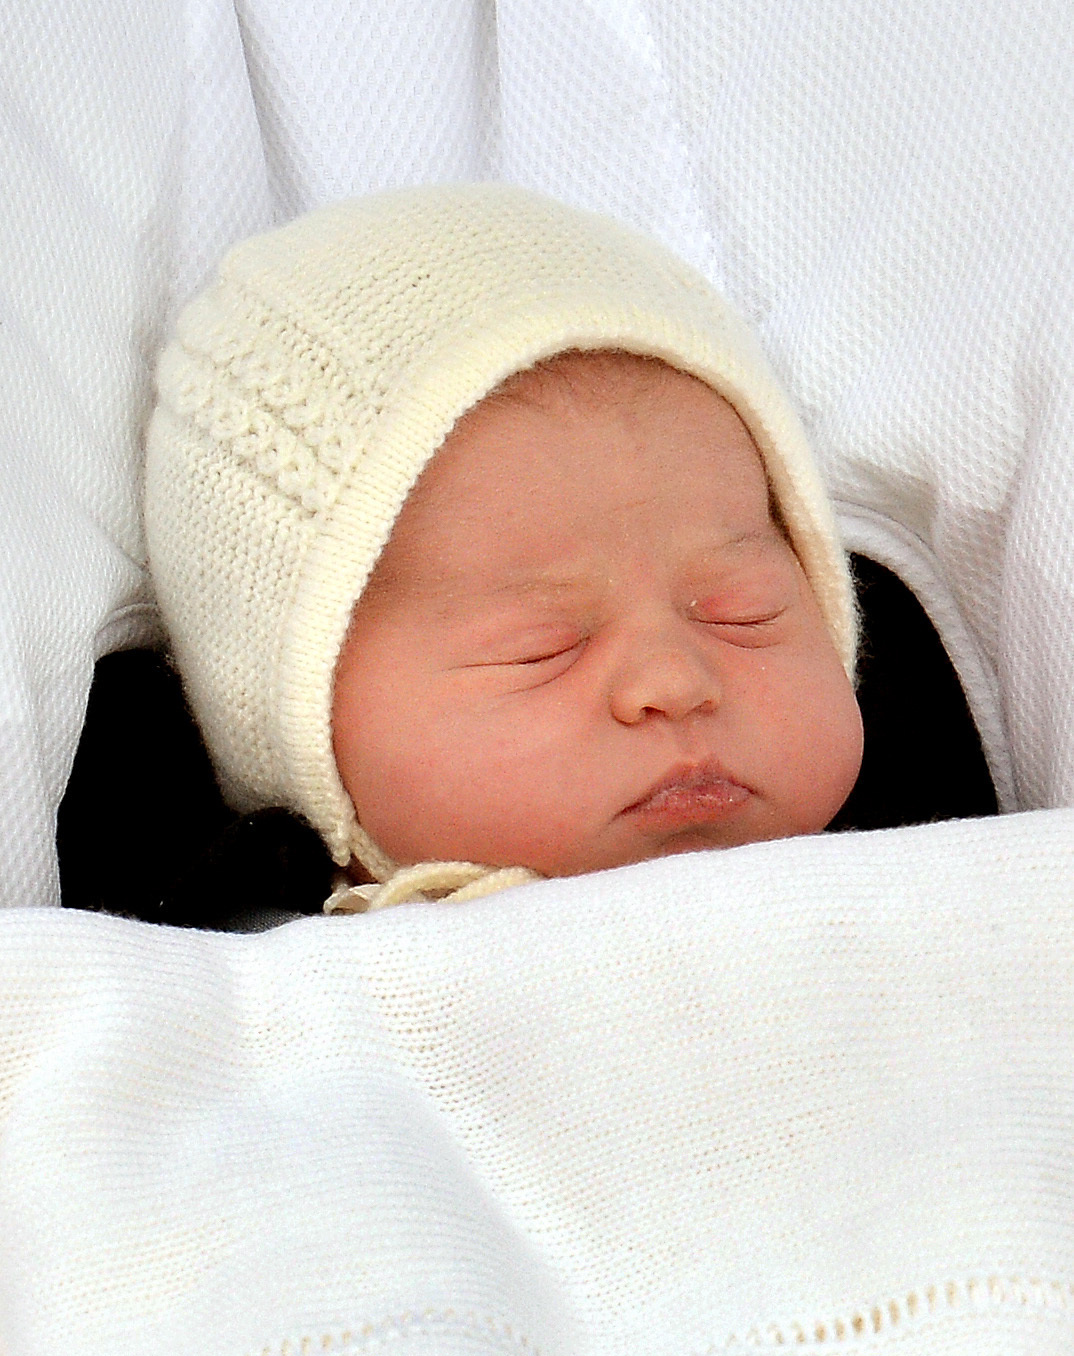 Princess Charlotte on May 2, 2015.